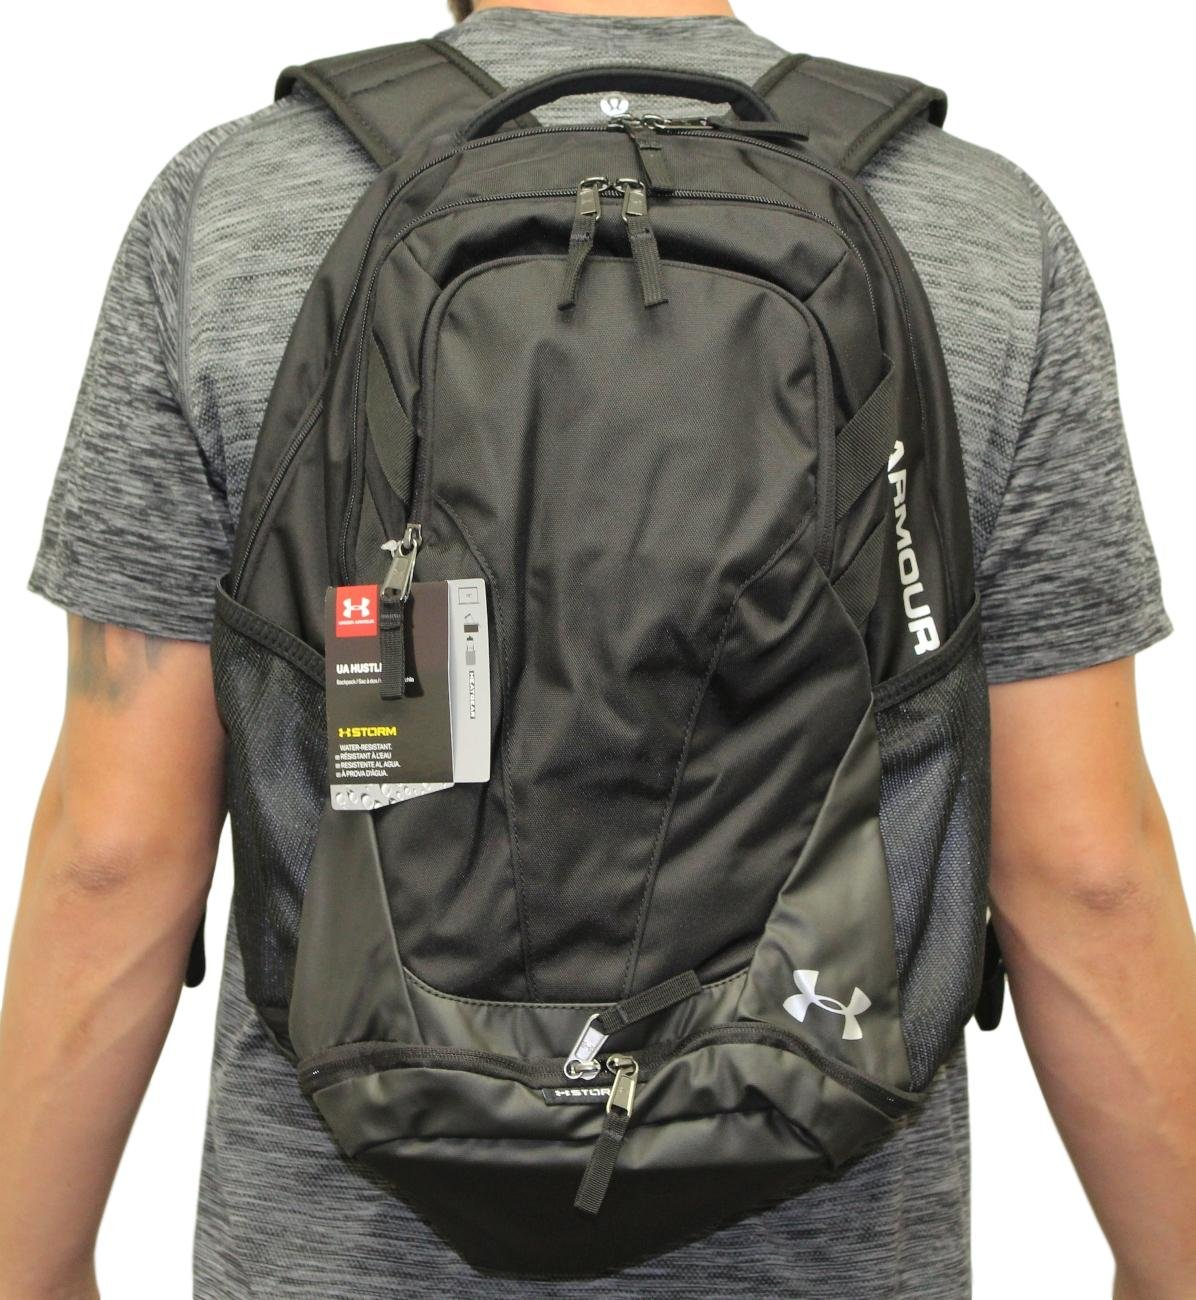 Amazon.com: Under Armour Hustle III Premium Backpack - Black: Sports & Outdoors